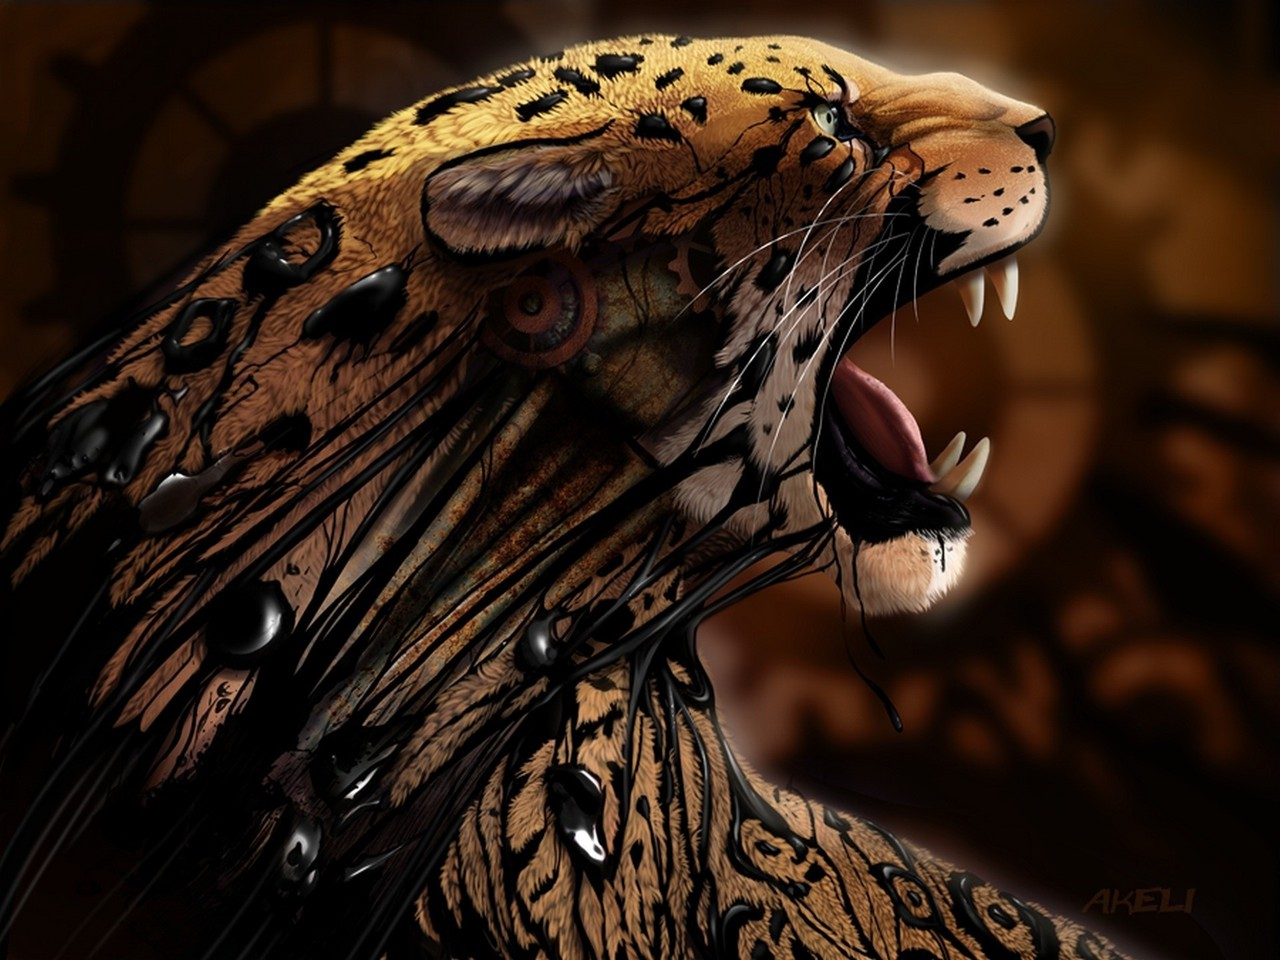 Tiger Art Wallpaper Jpg 960 800: A Stunning Tiger Wallpaper